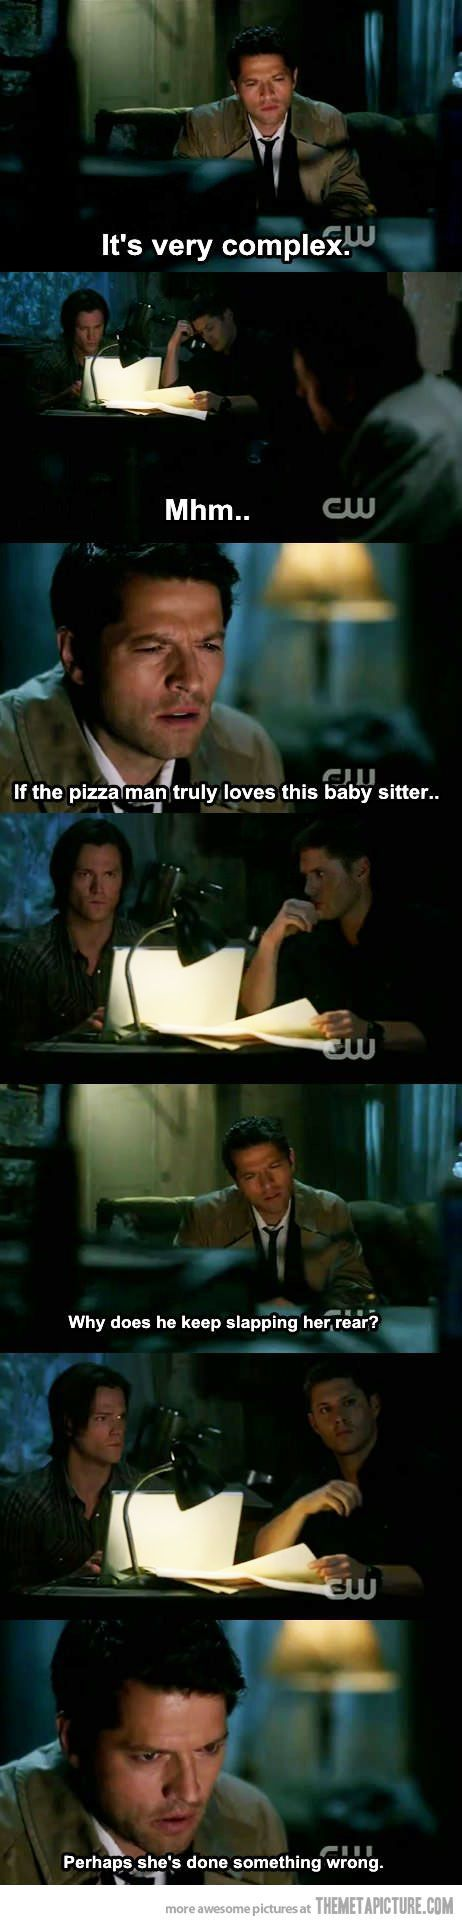 Supernatural - Castiel. I love this scene its one of the best for castiel 😂